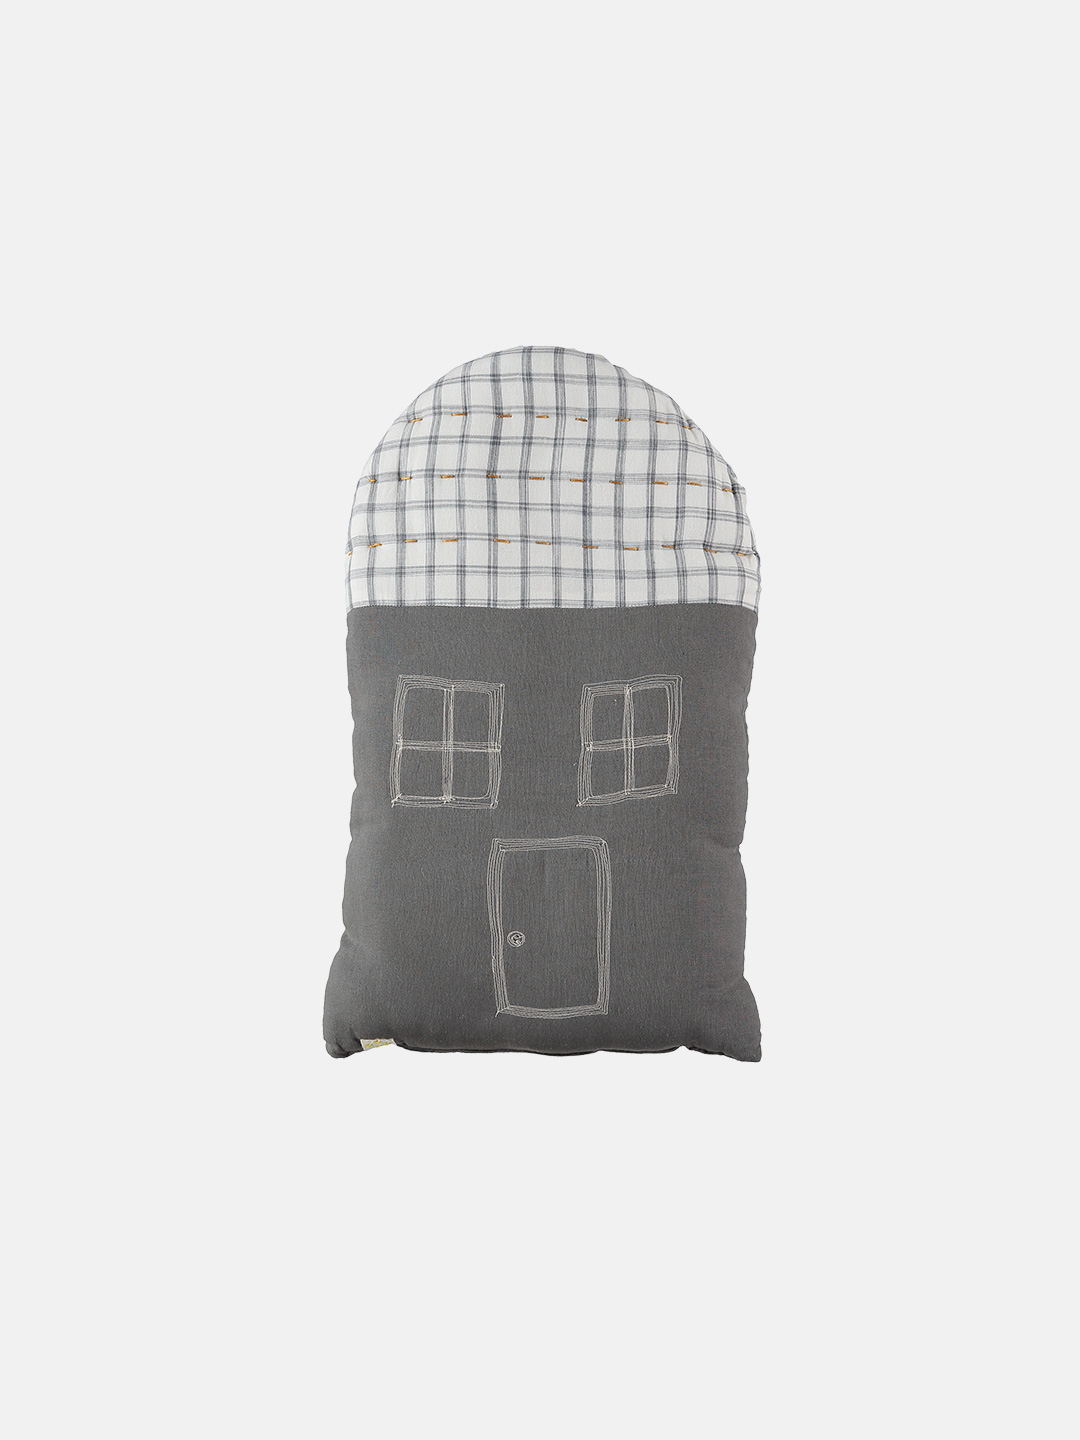 Midi House Cushion - Slate & Ivory